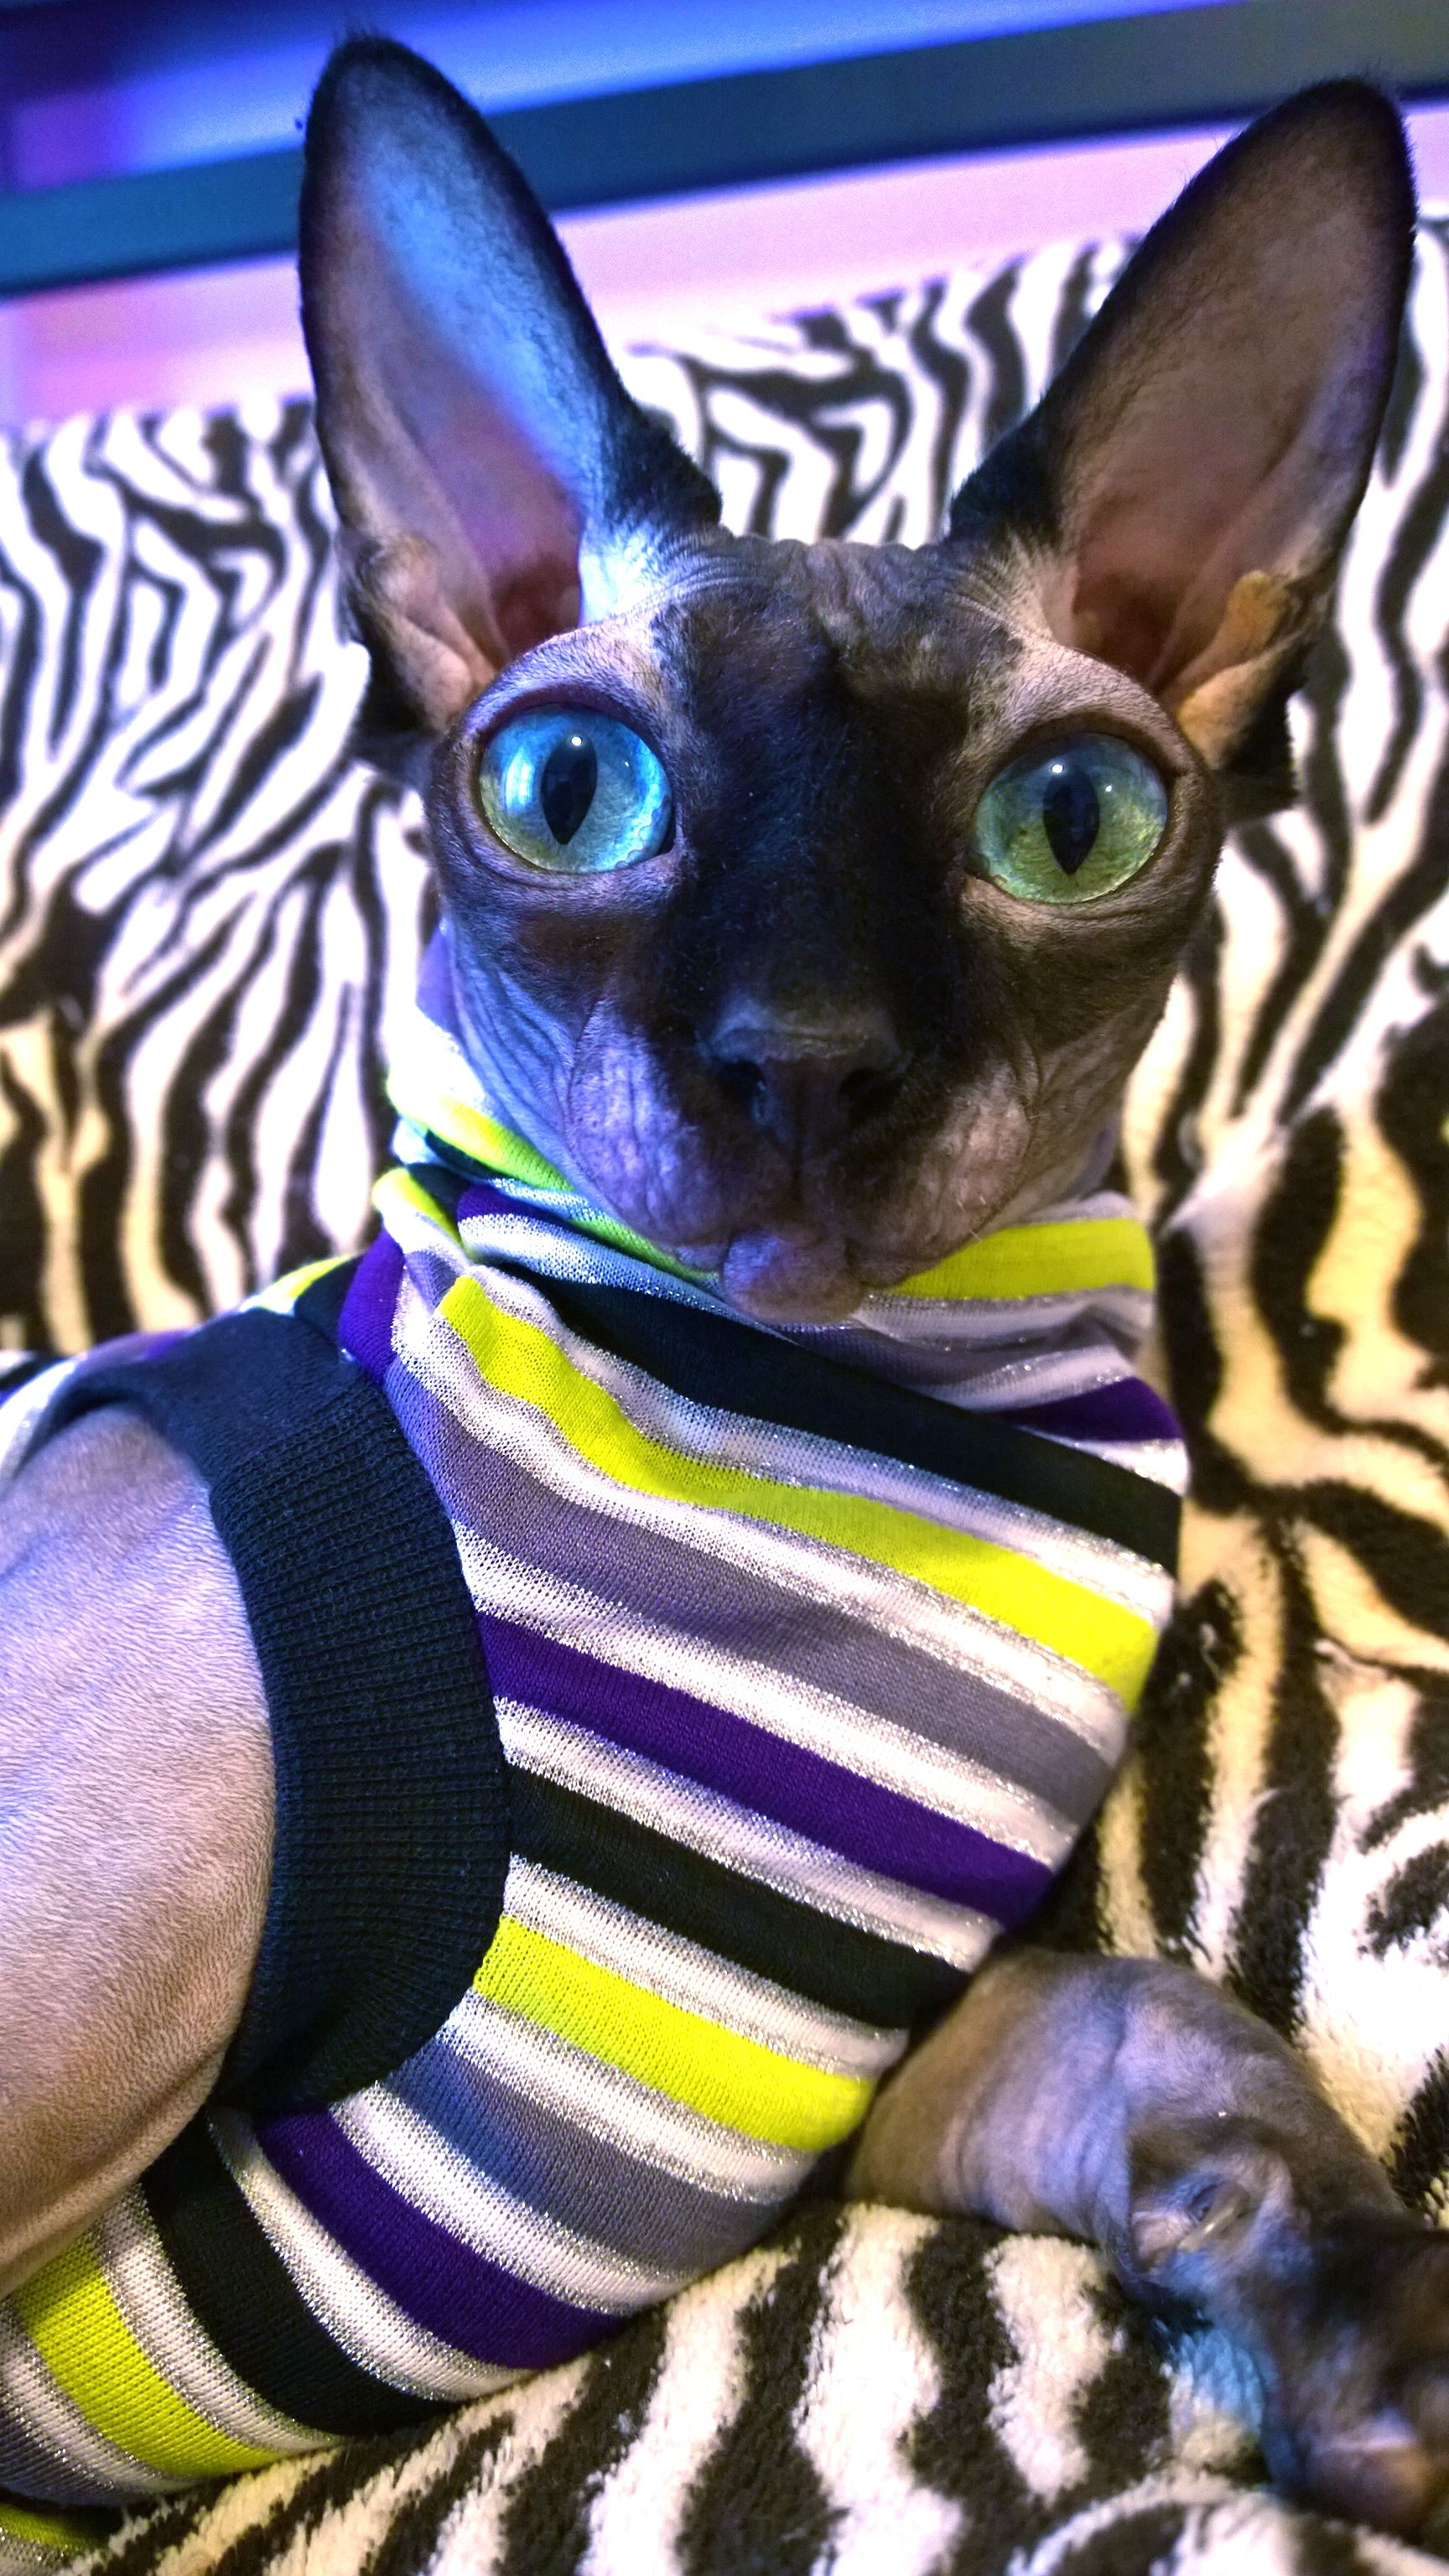 Peppermint Punk Berry Rare Cats Cute Hairless Cat Sphynx Cat Clothes